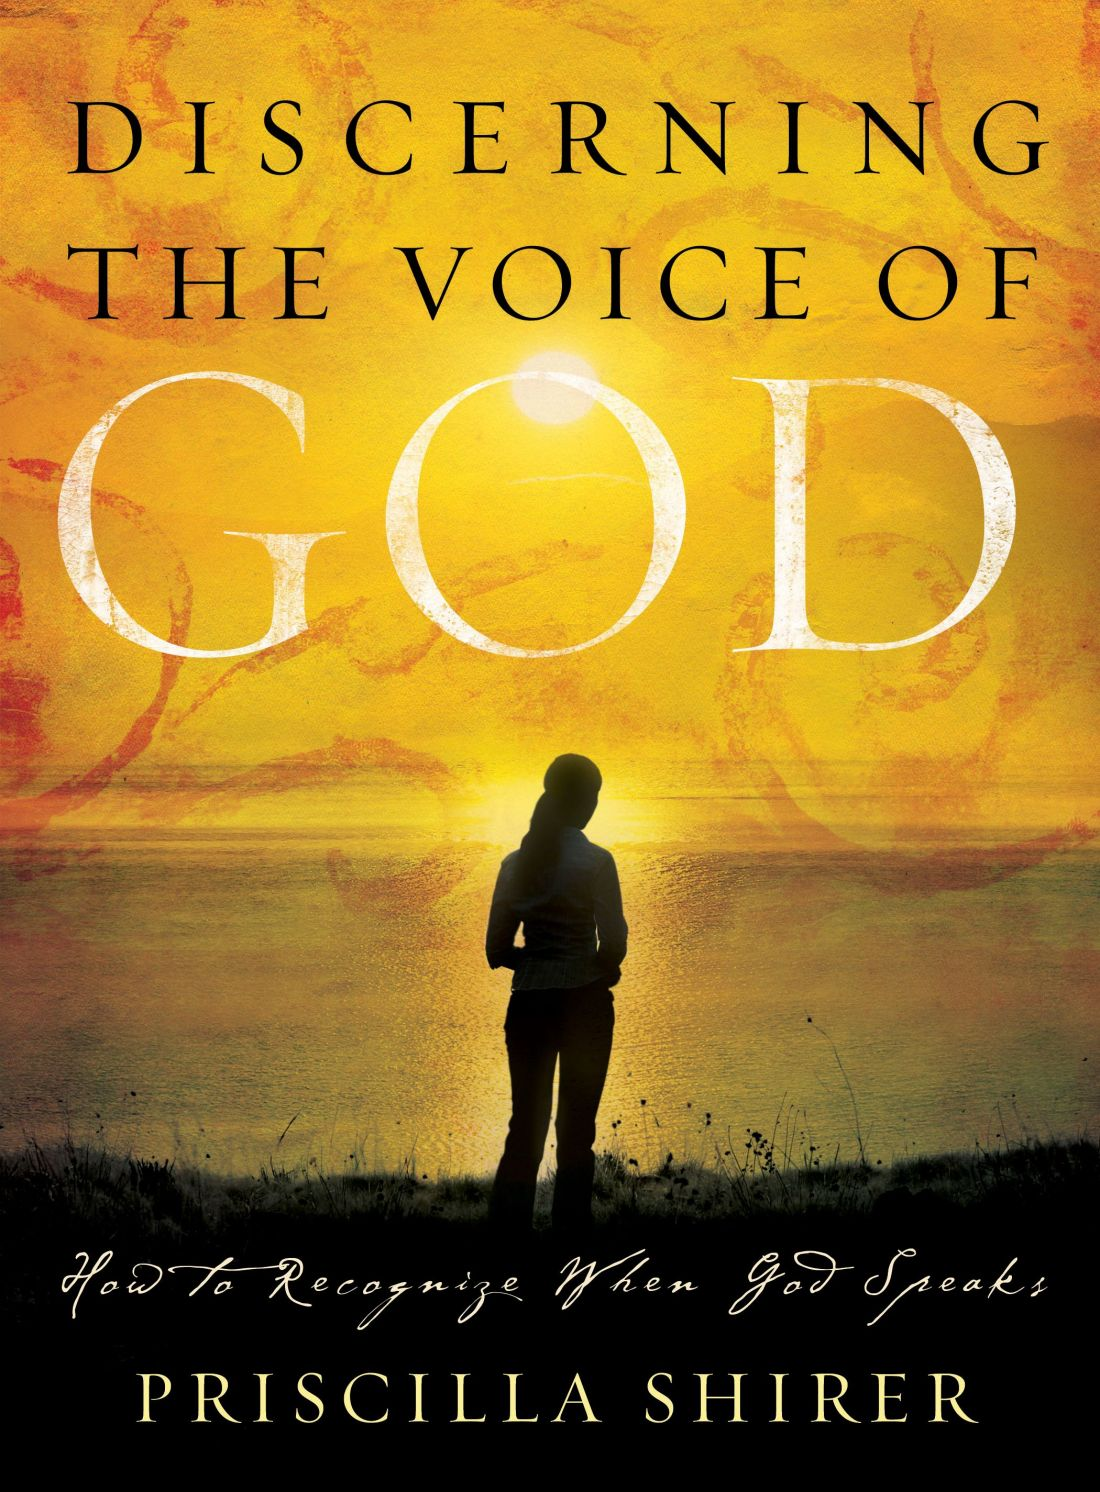 Discerning the voice of god this study helps provide